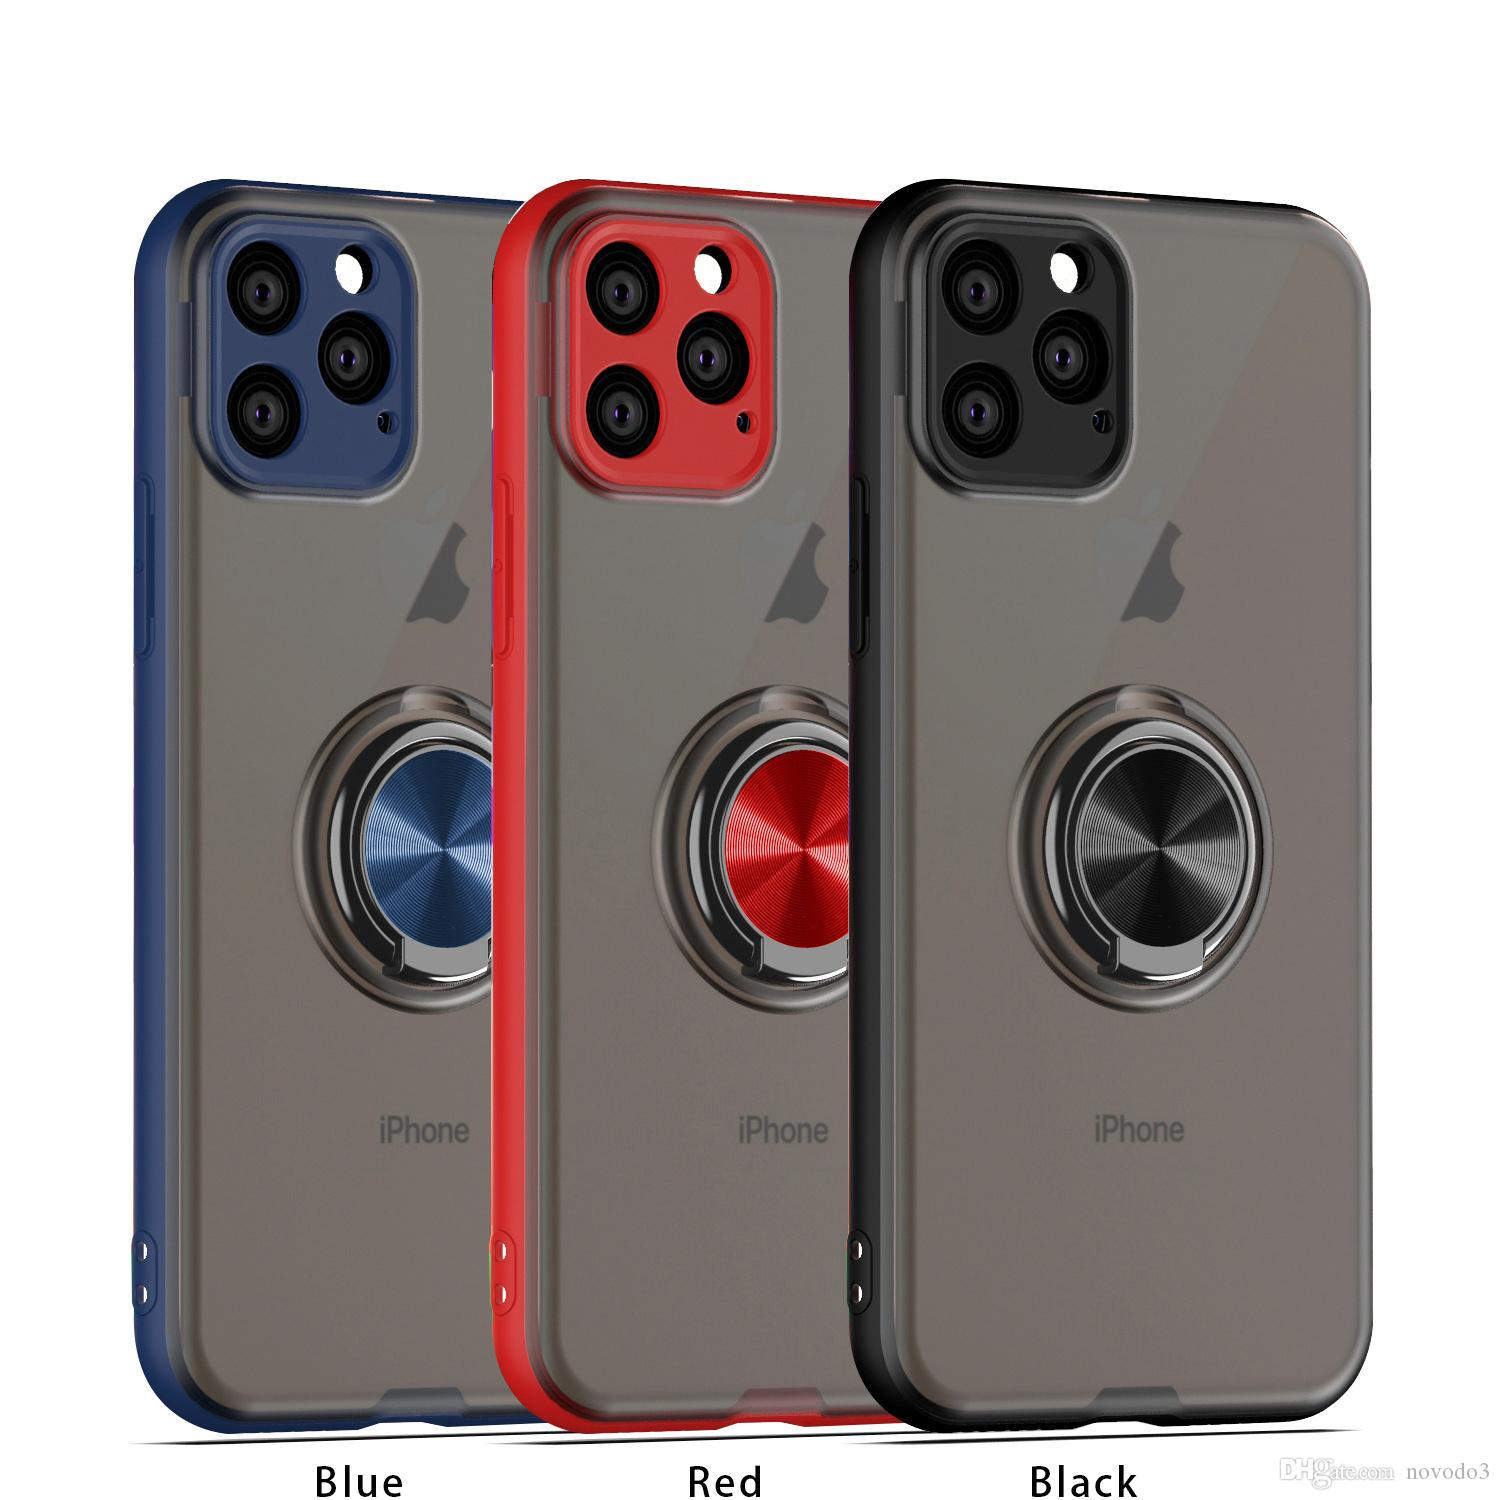 Iphone 11 Pro Max Phone Case with Magnet Ring Silicone cases Iphone X XR XS MAX 6 6S PLUS 7/8 Cover Apple